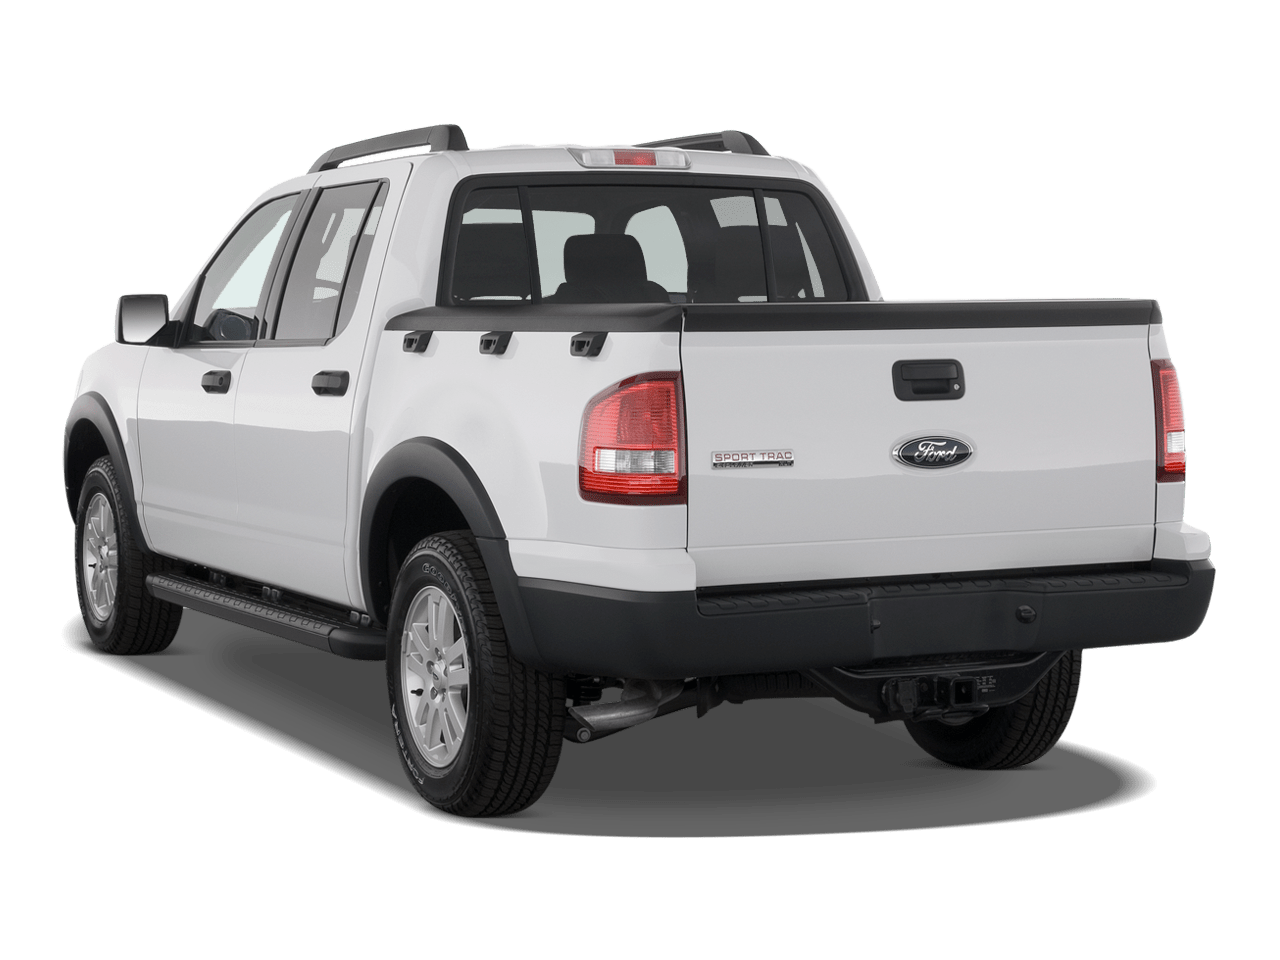 hight resolution of 12 25 2009 ford explorer sport trac